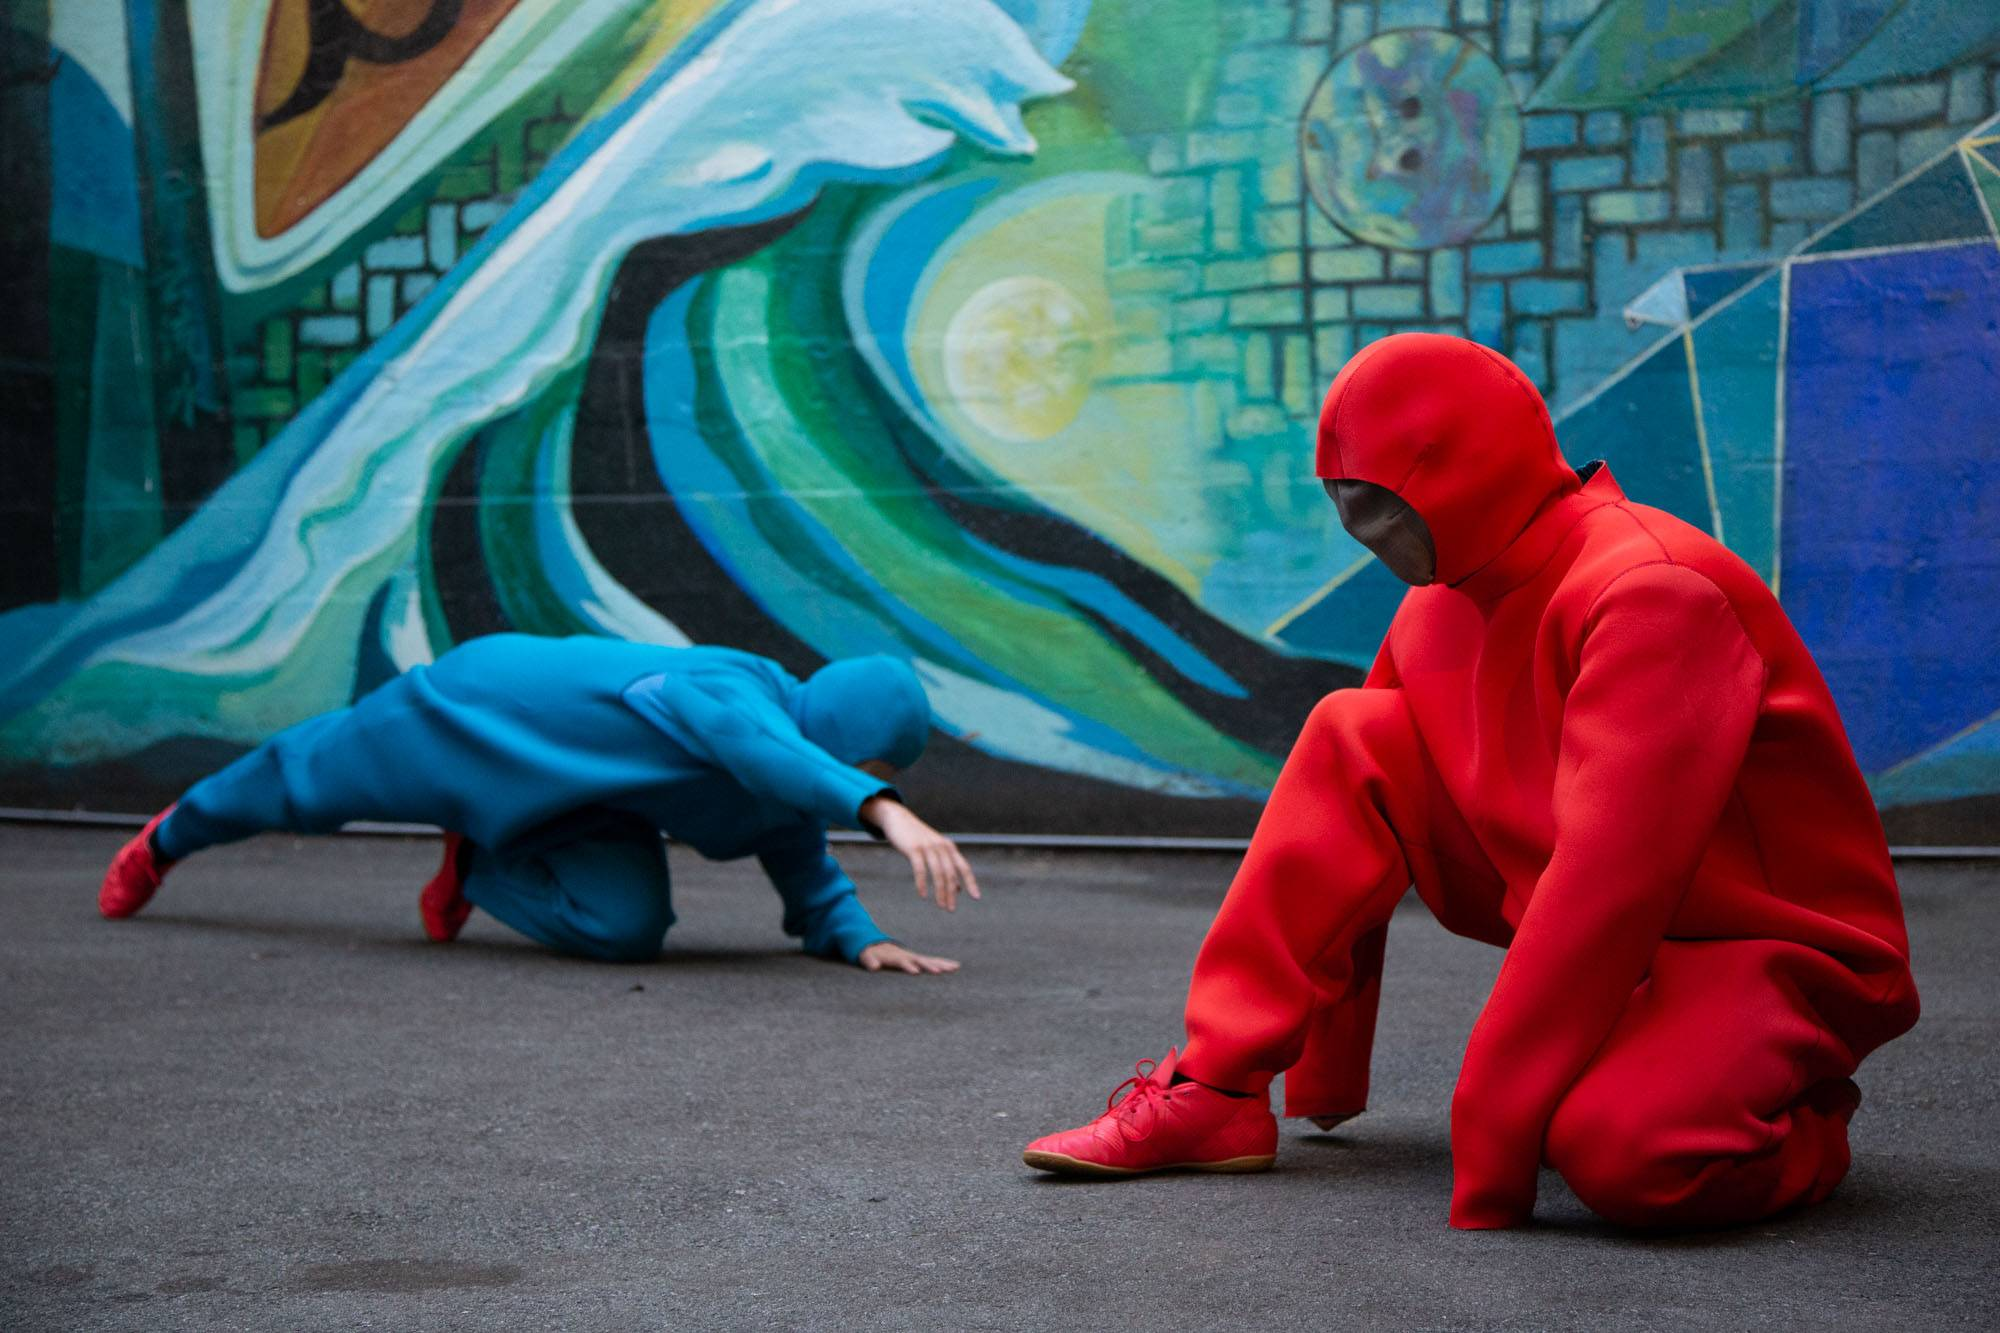 Dancing on the Edge: Rigel & Betelgeuse at the Firehall Arts Centre, Vancouver, Jul 11 2019. Kirk Chantraine photo.